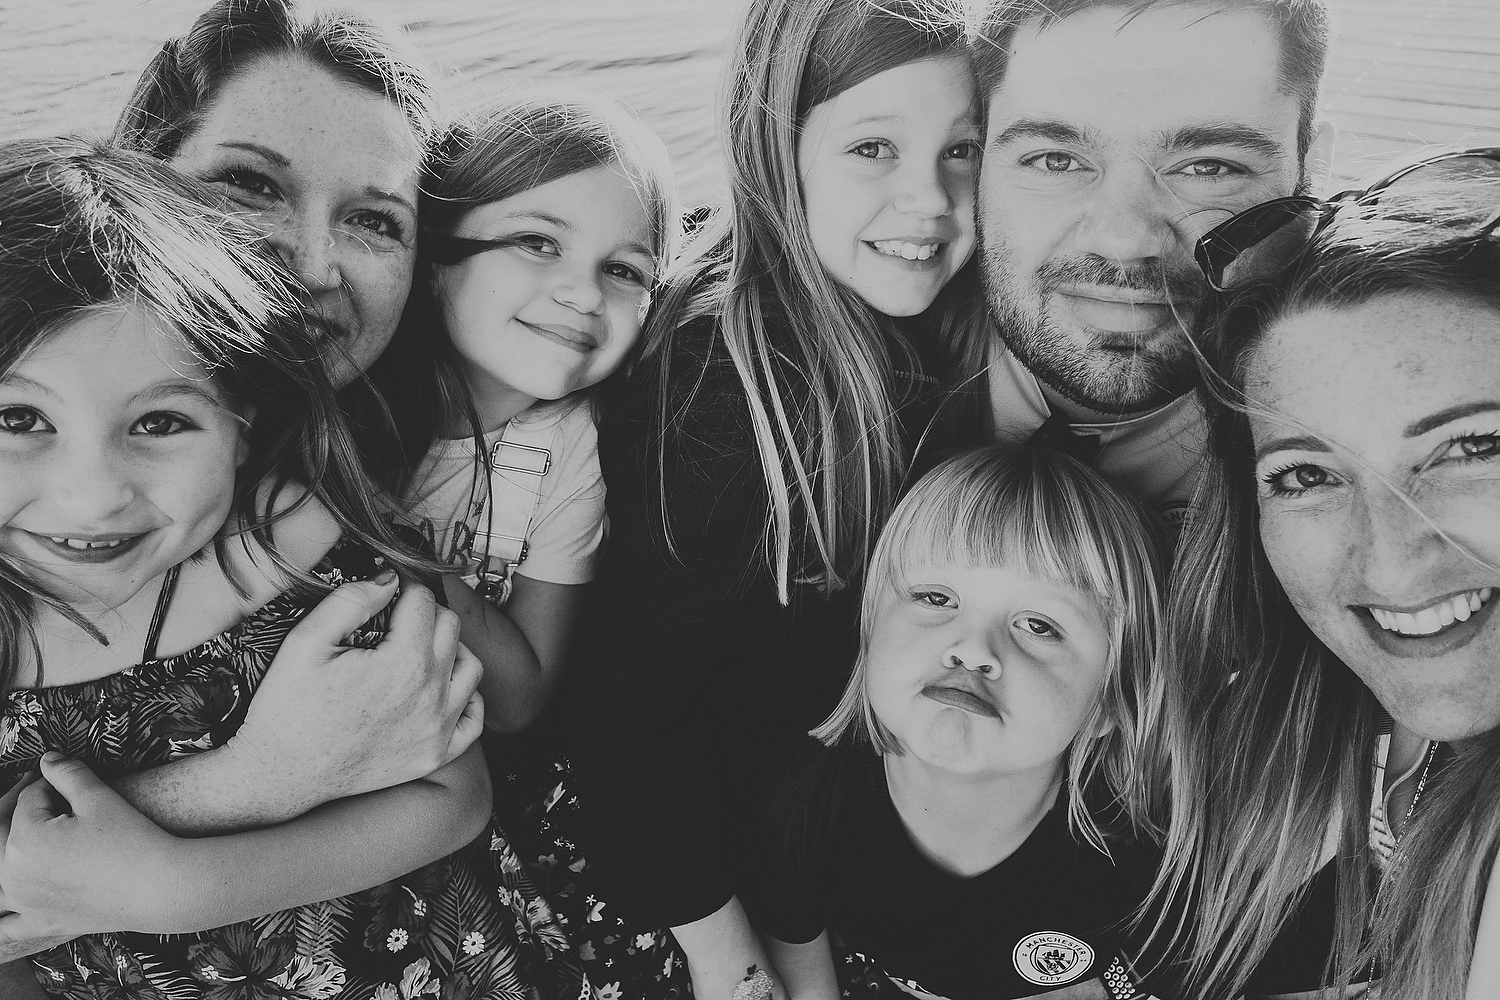 FAMILY SELFIE BLACK AND WHITE FAMILY PHOTOGRAPHY AT CENTER PARCS FRANCE LAC D'AILETTE